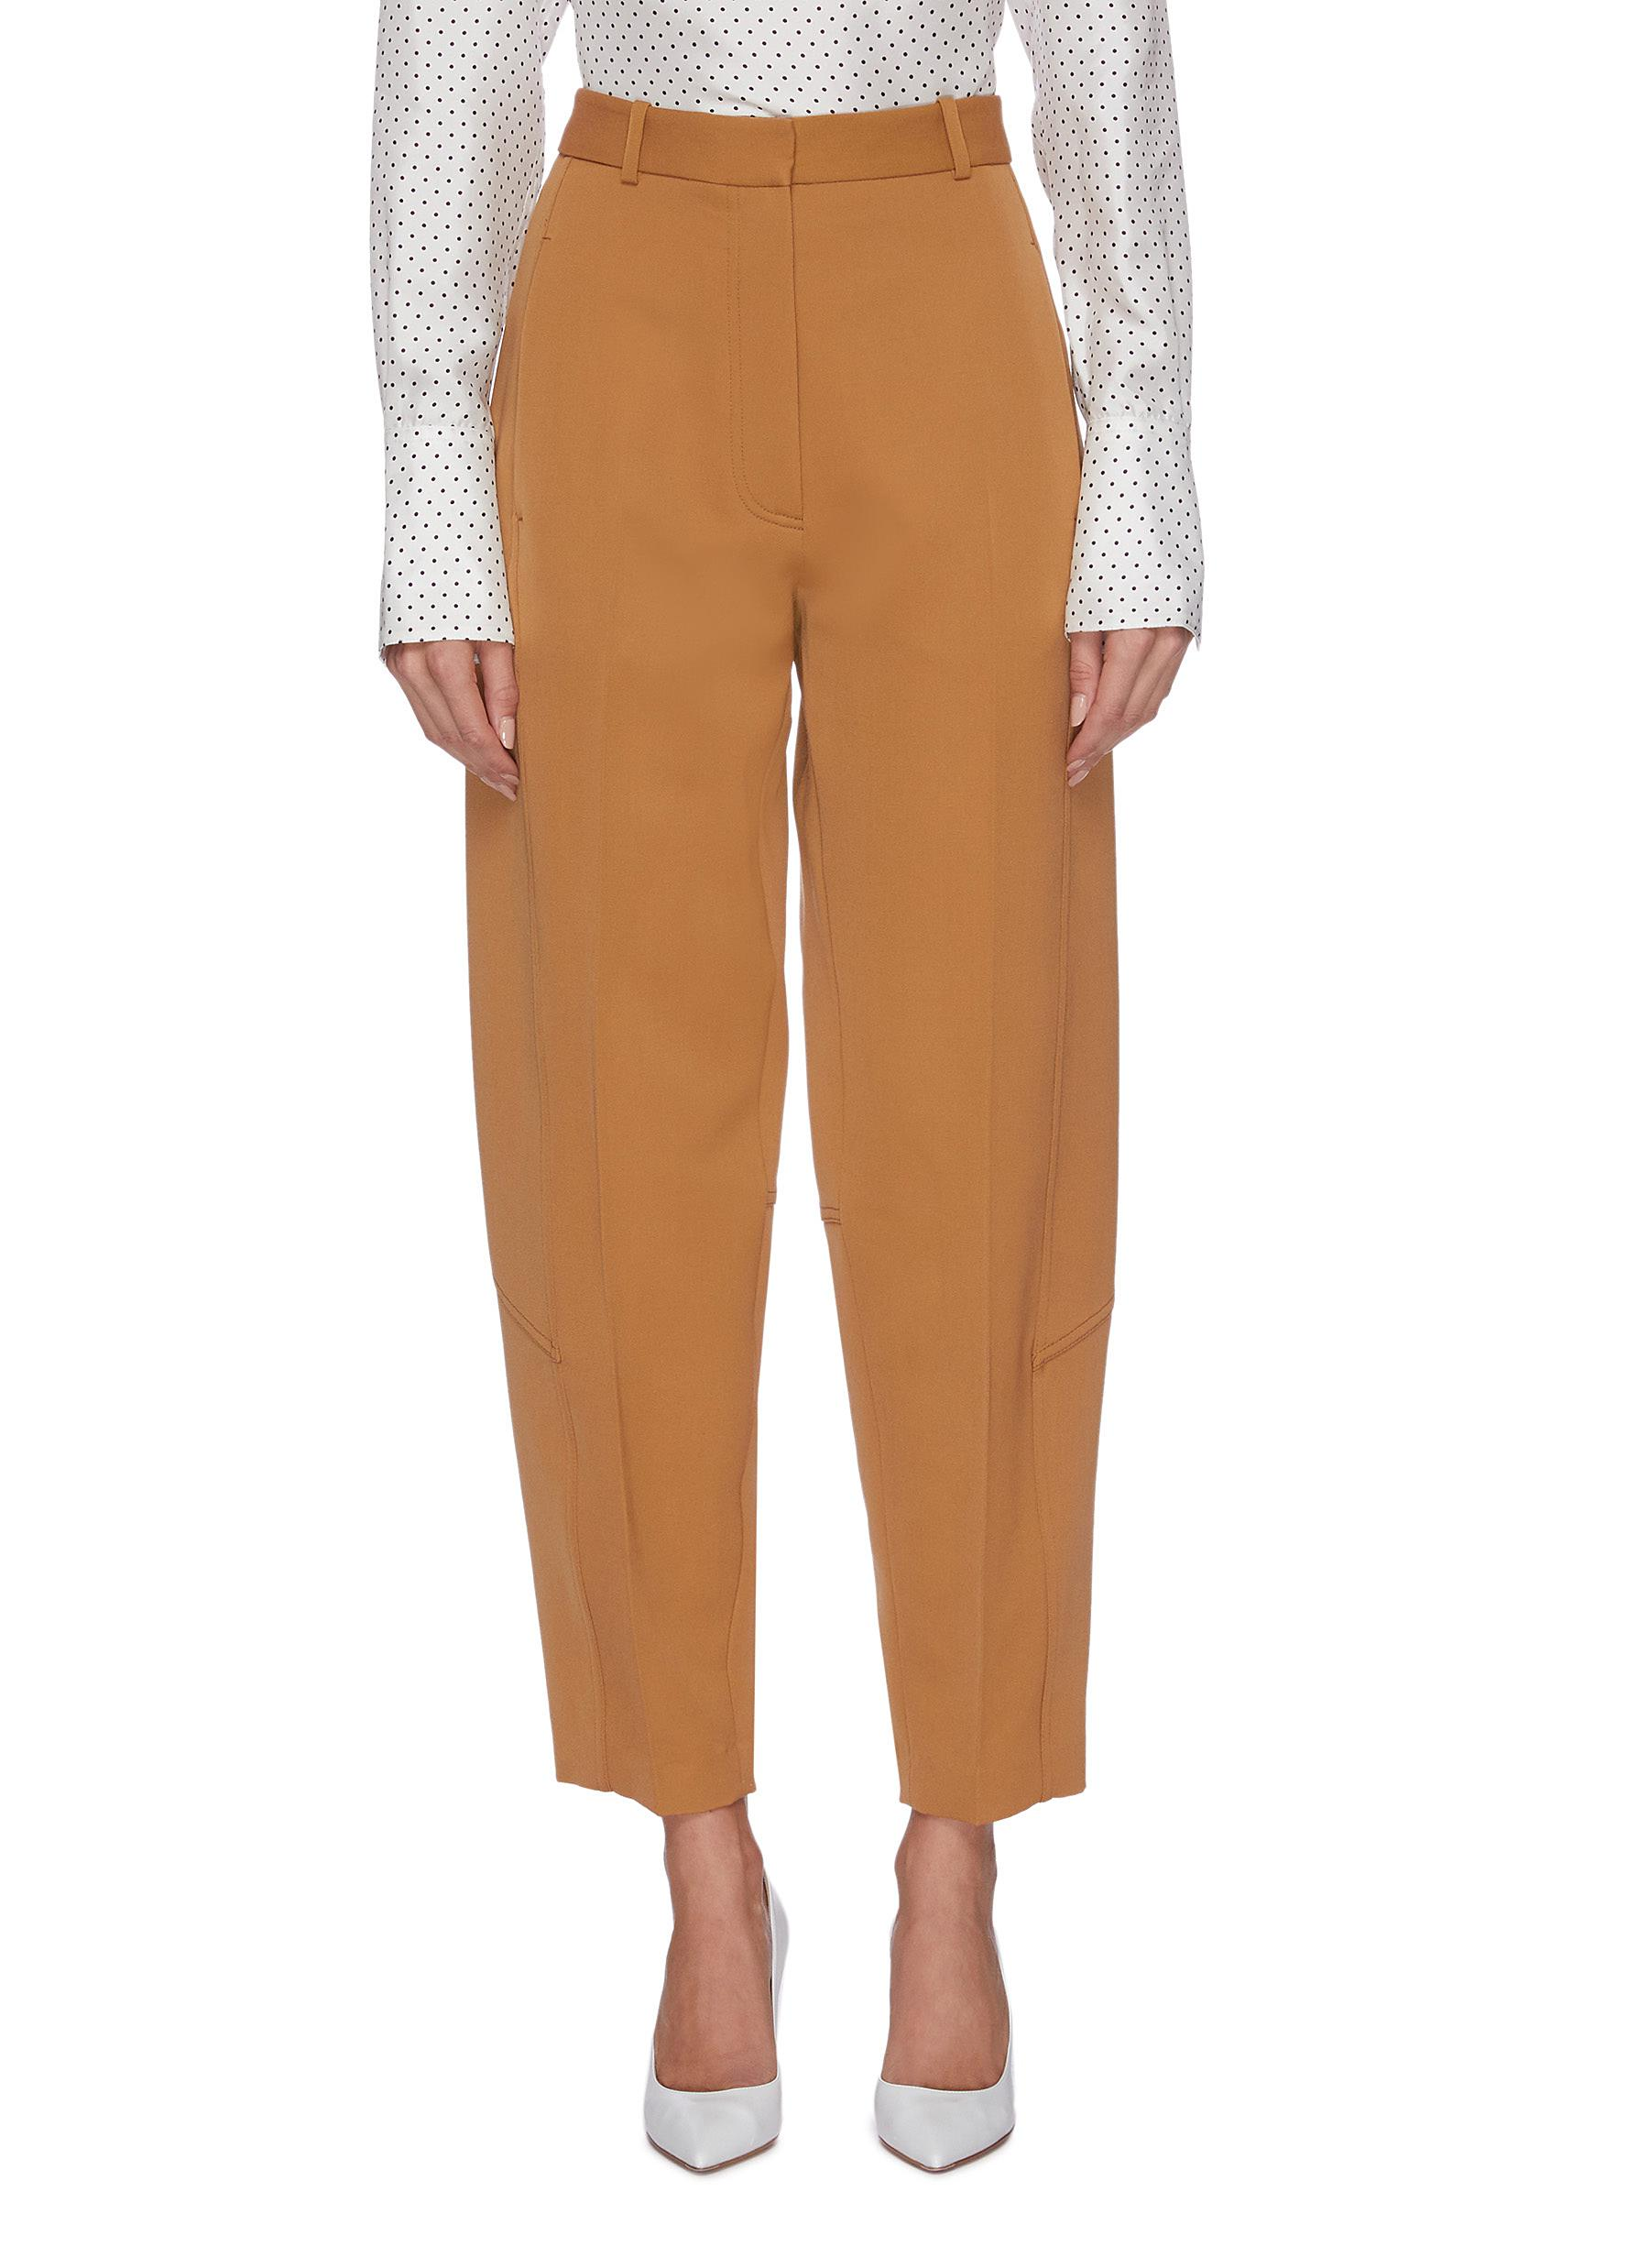 Cropped tailored pants by Victoria Beckham